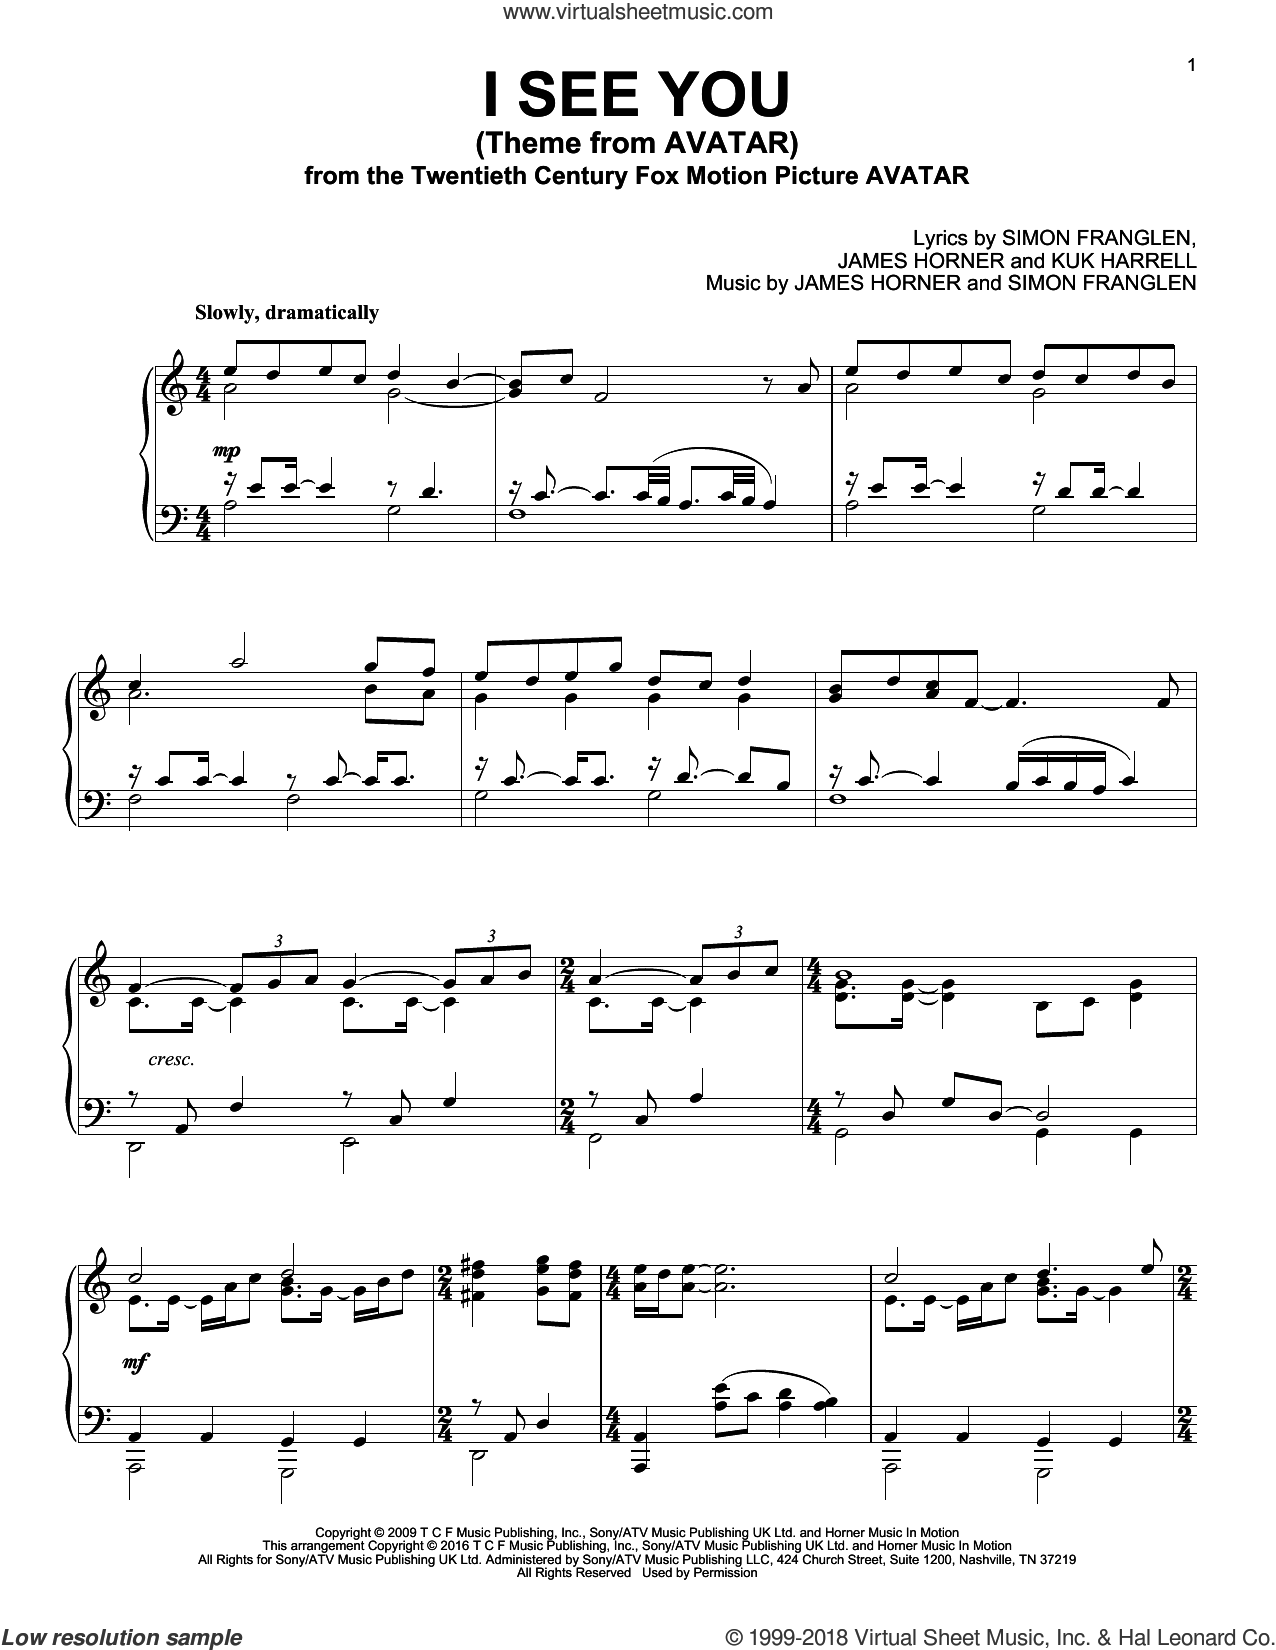 I See You (Theme From Avatar), (intermediate) sheet music for piano solo by Leona Lewis, James Horner, Kuk Harrell and Simon Franglen, intermediate skill level